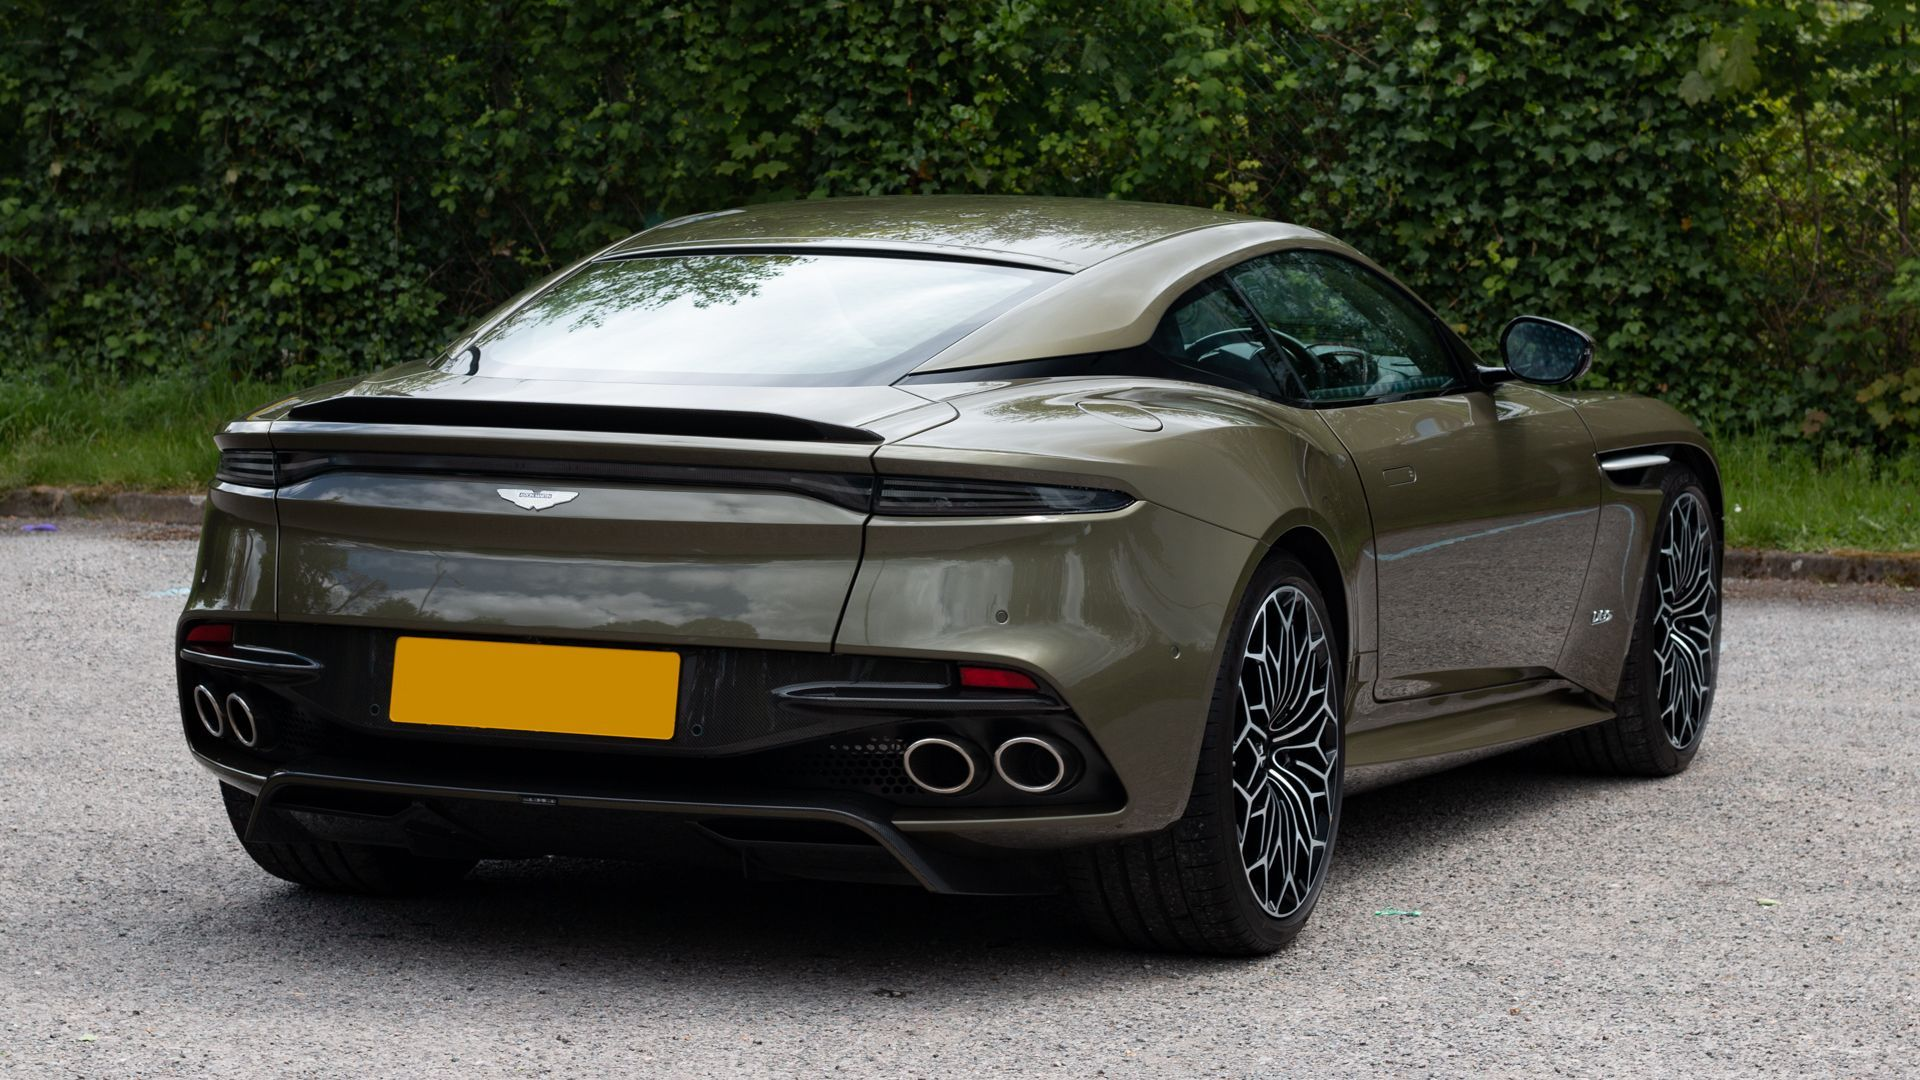 Aston_Martin_DBS_Superleggera_OHMSS_sale_0000